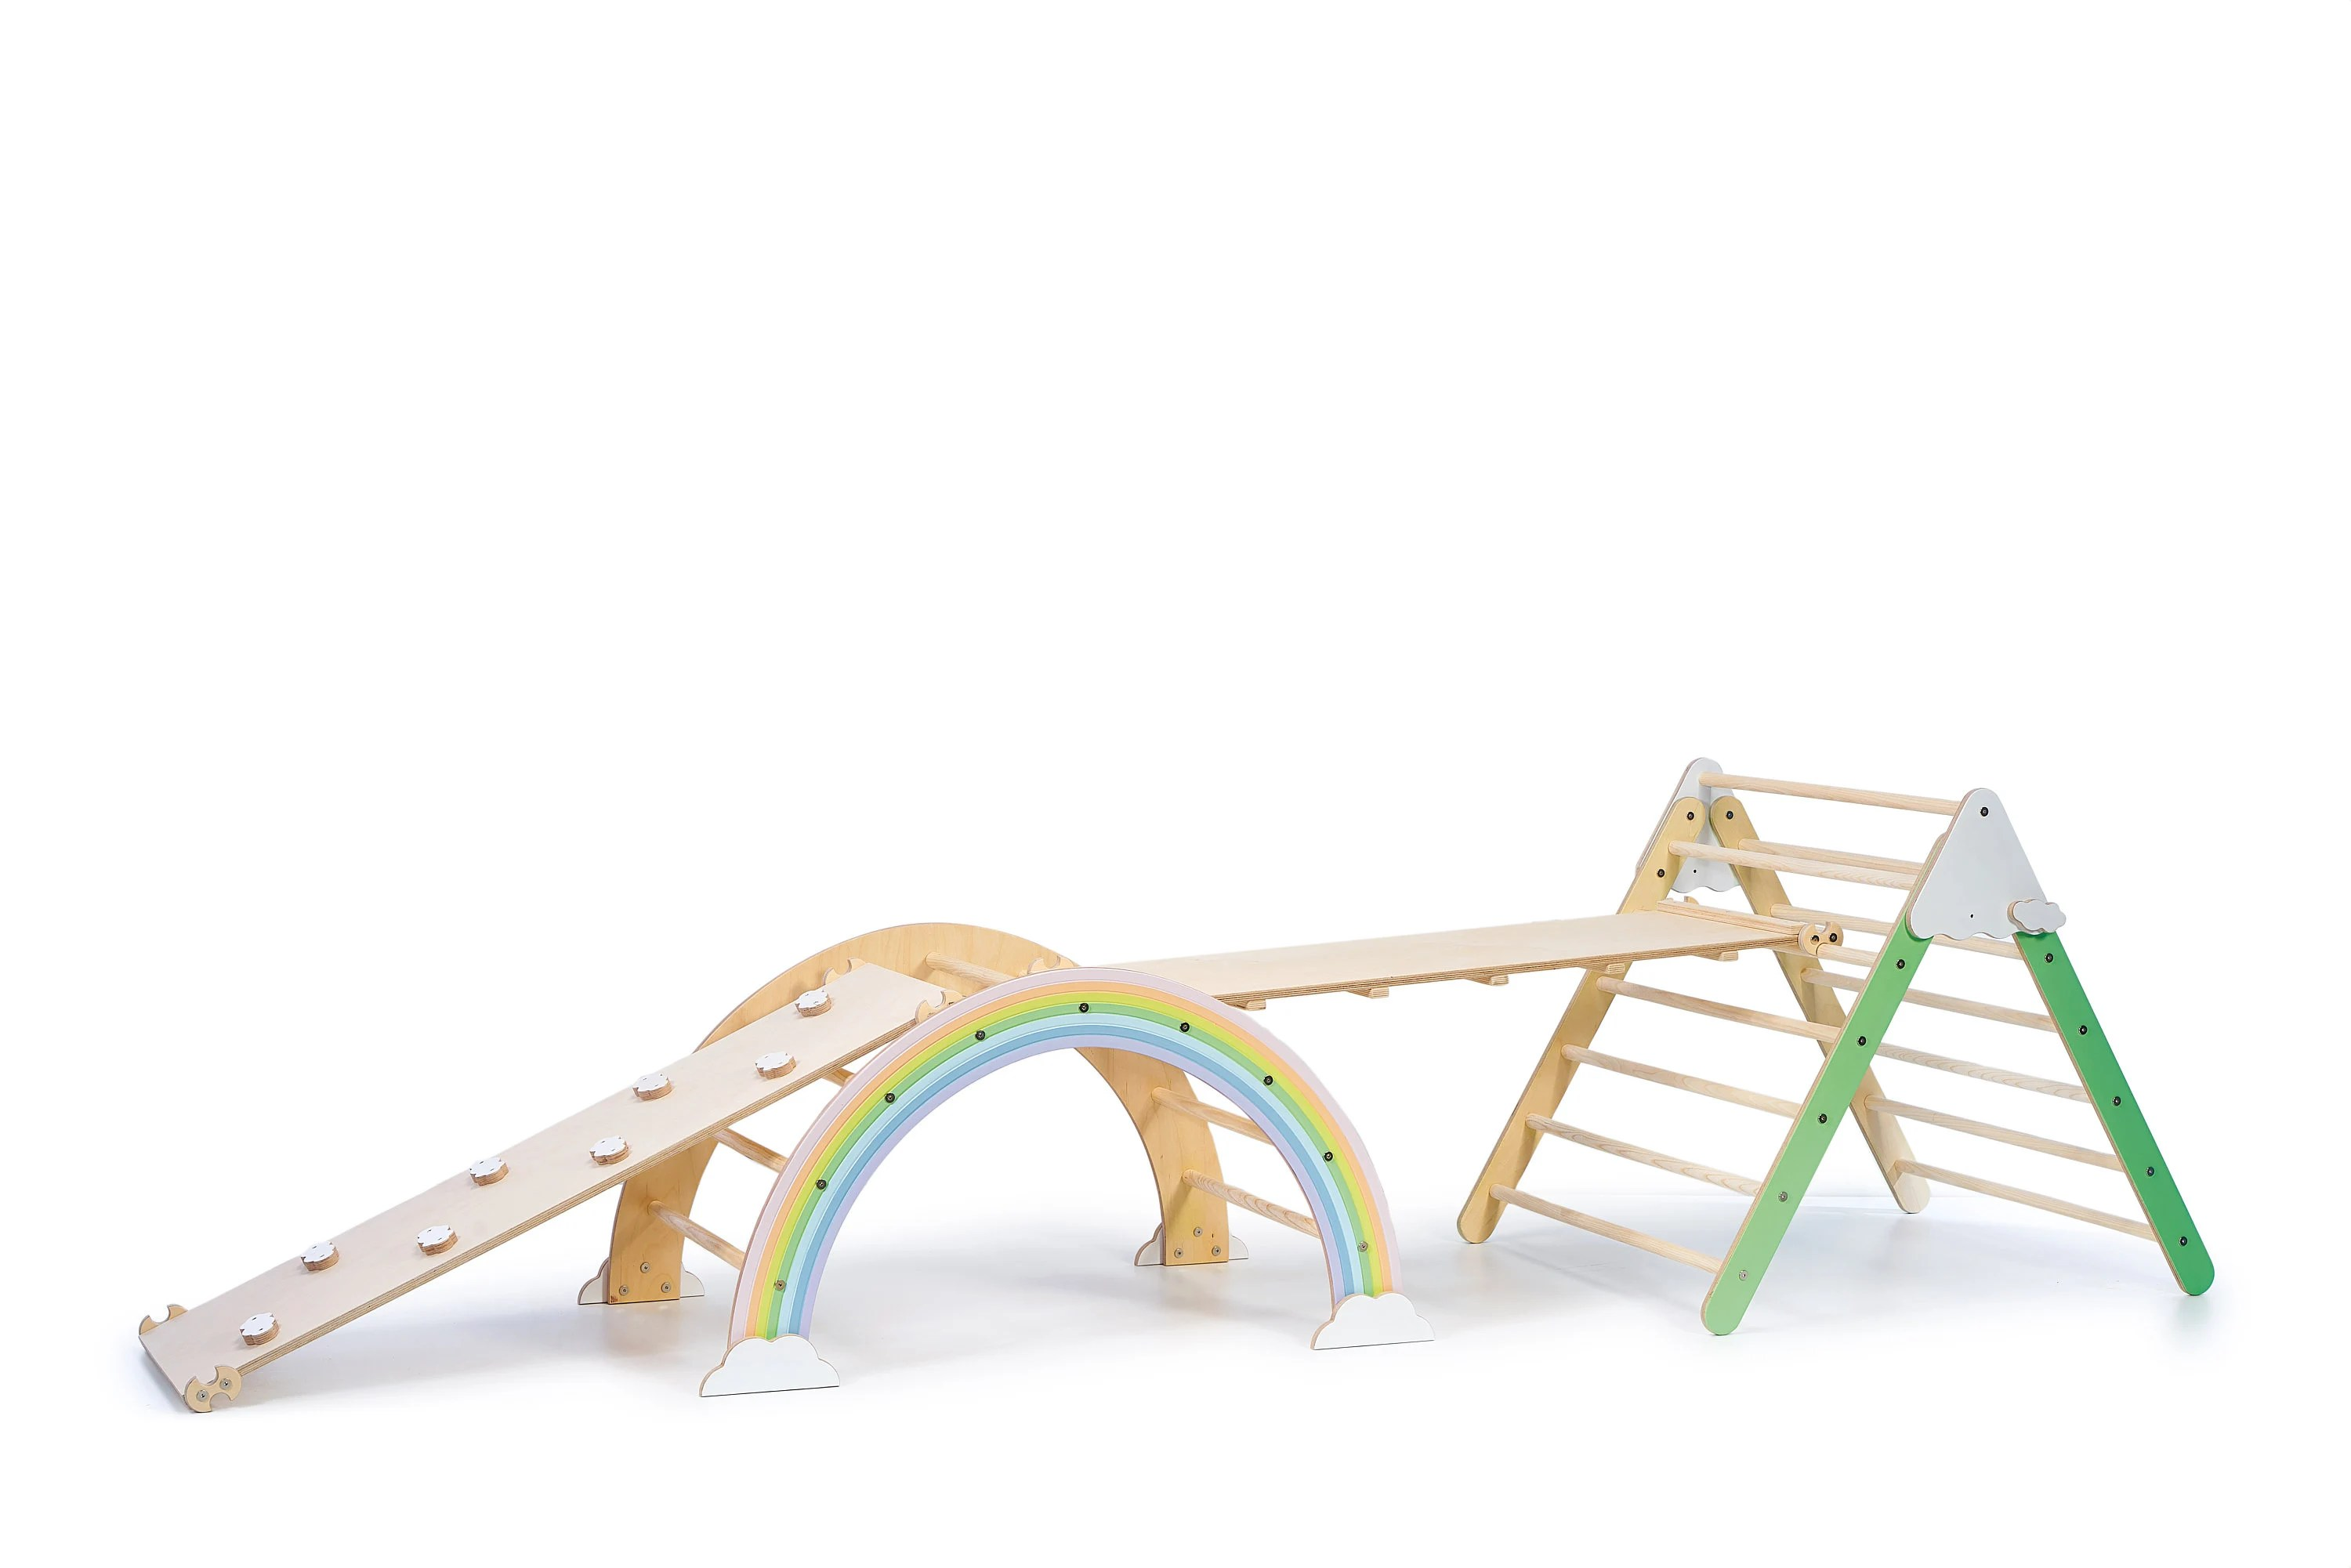 Foldable Pikler Triangle Climbing Arch with Ramp Climbing Painted-Pastel